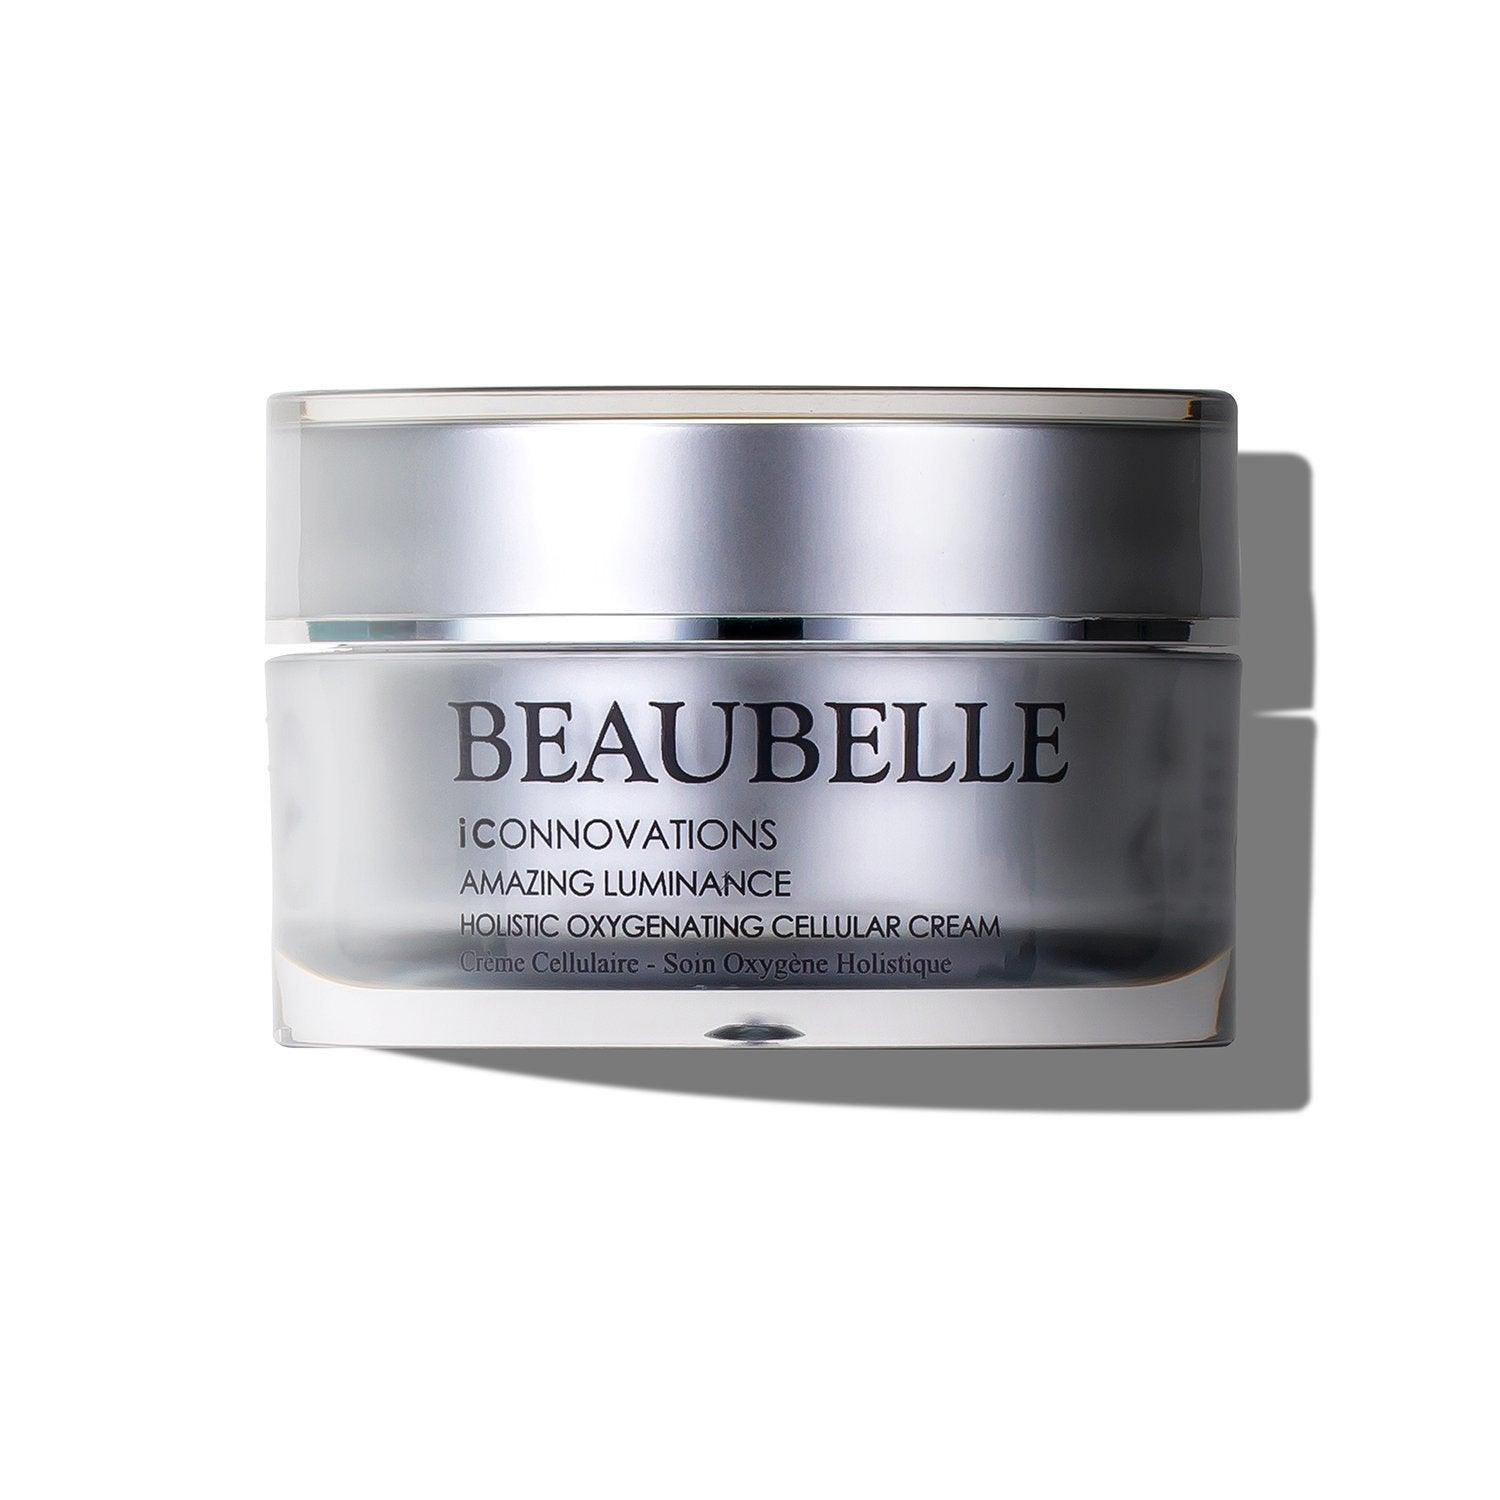 Amazing Luminance Holistic Oxygenating Cellular Cream